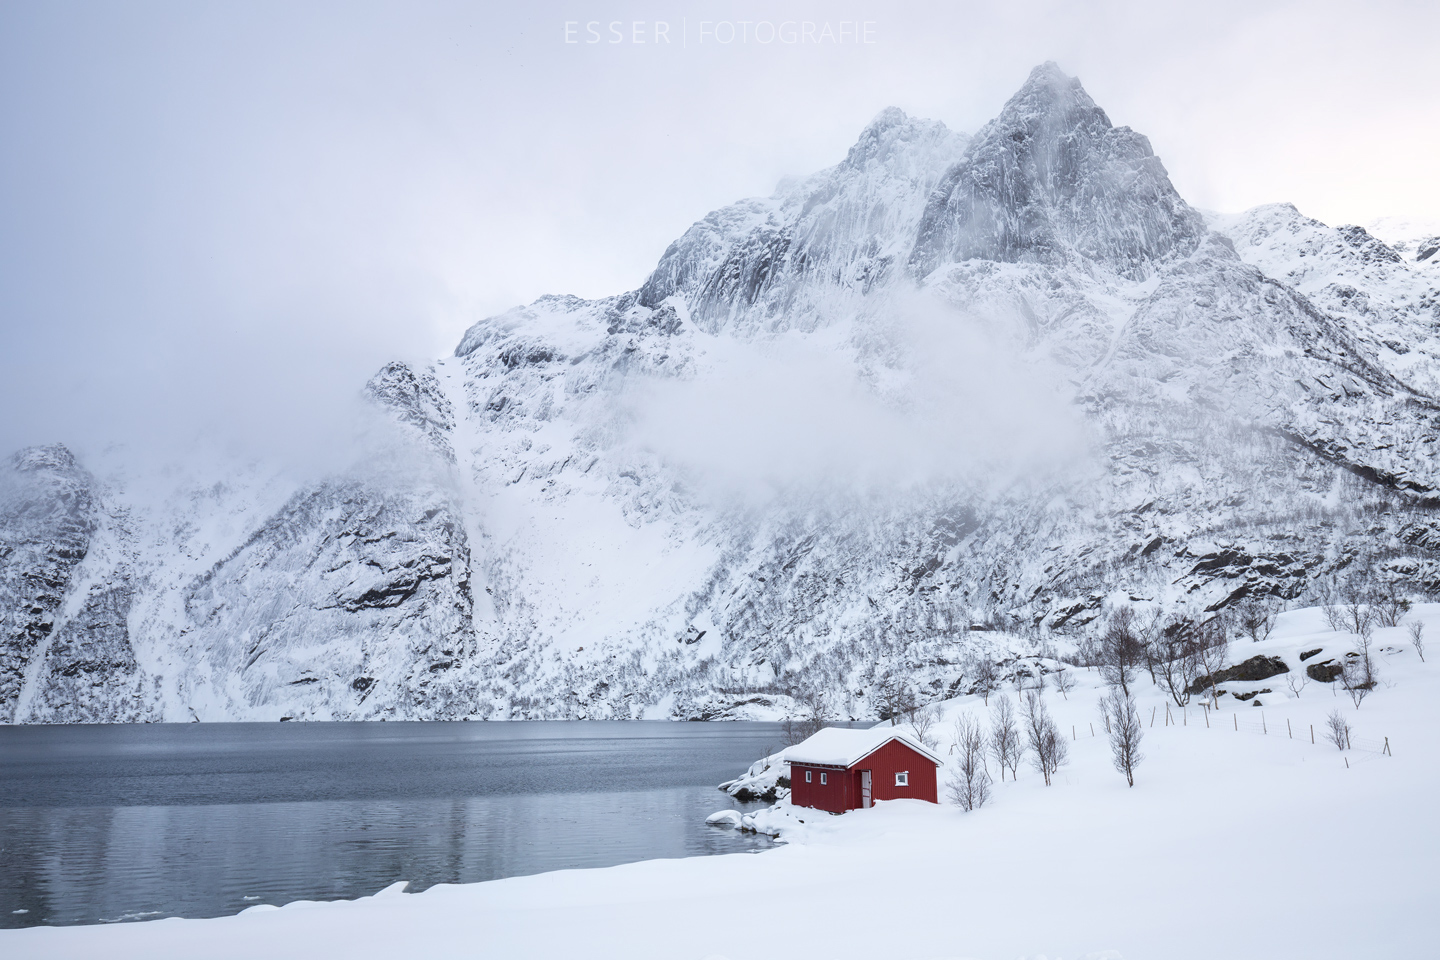 esser-fotografie-red-house-mountain-winter-snow-clouds